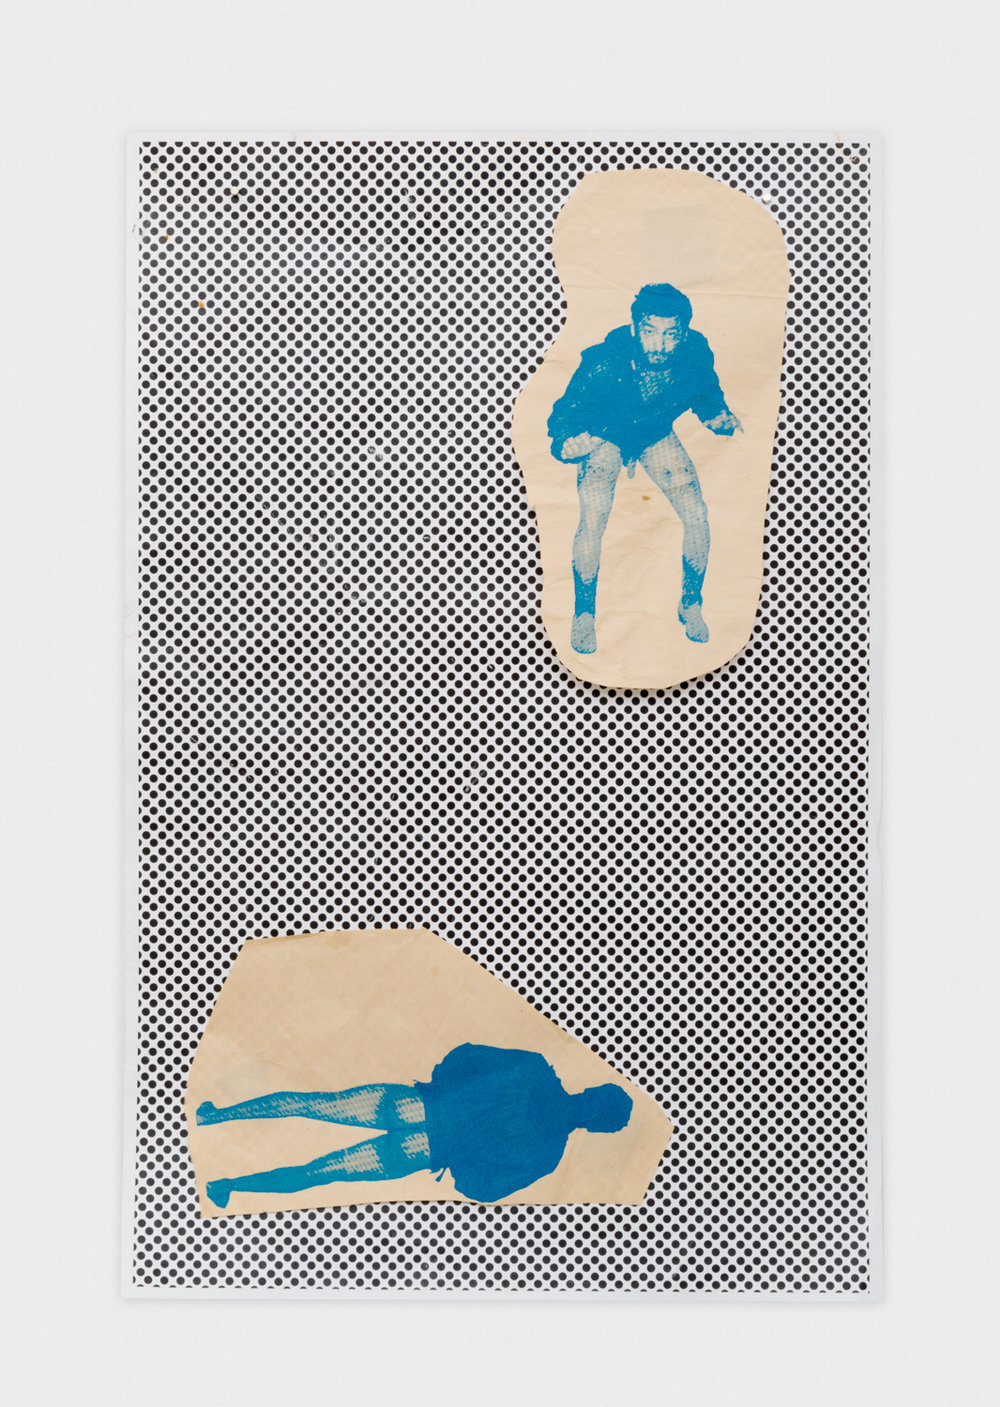 Alex Becerra Front and Back Cowboy (Dots) 2014 Silkscreen on newsprint and xerox copy 17 x 11 in (43,18h x 21.59w cm) AB224